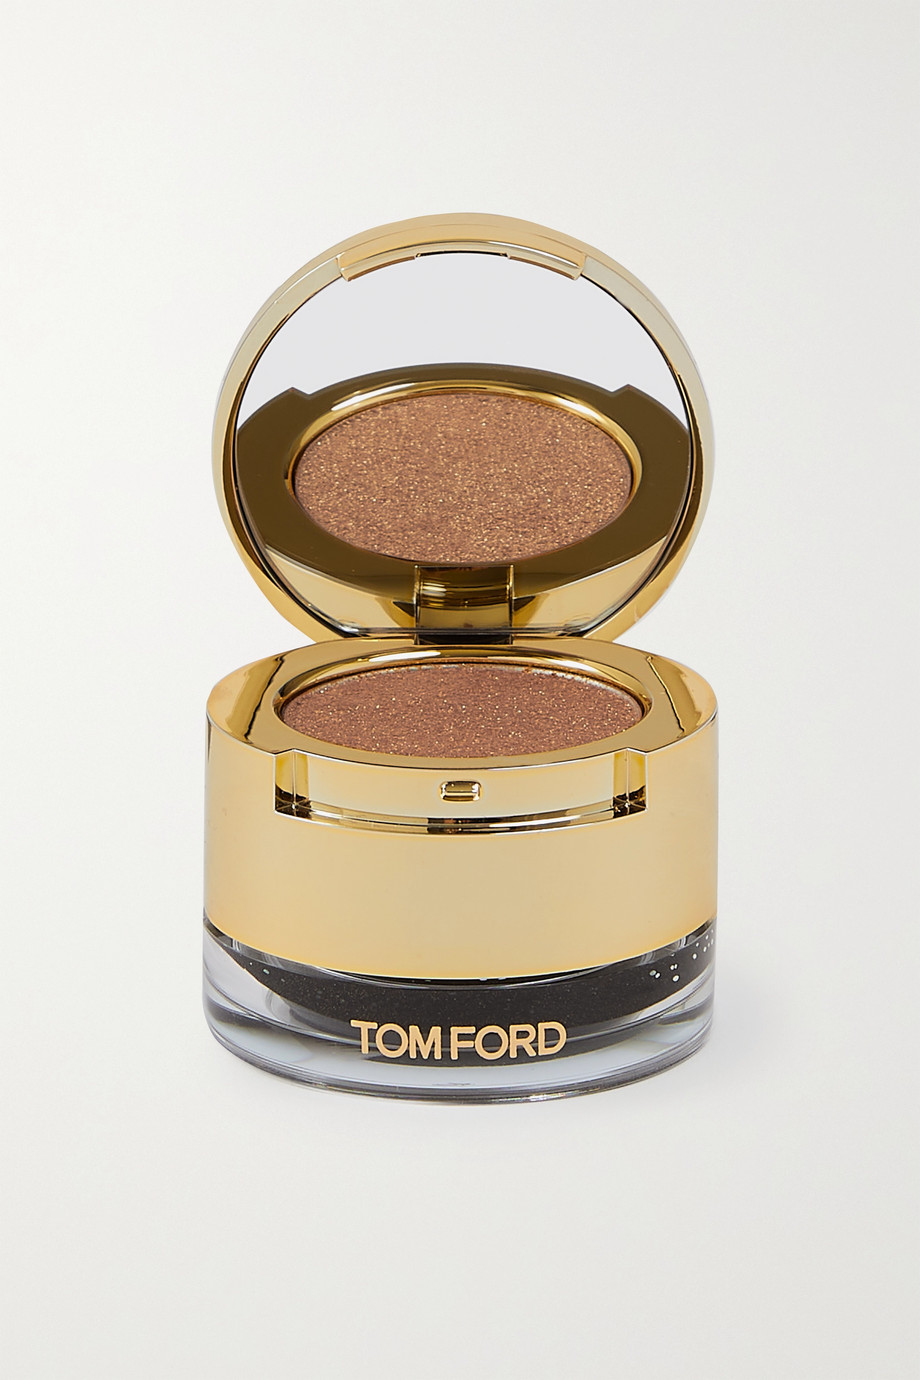 TOM FORD BEAUTY Cream and Powder Eye Color - Black Sand